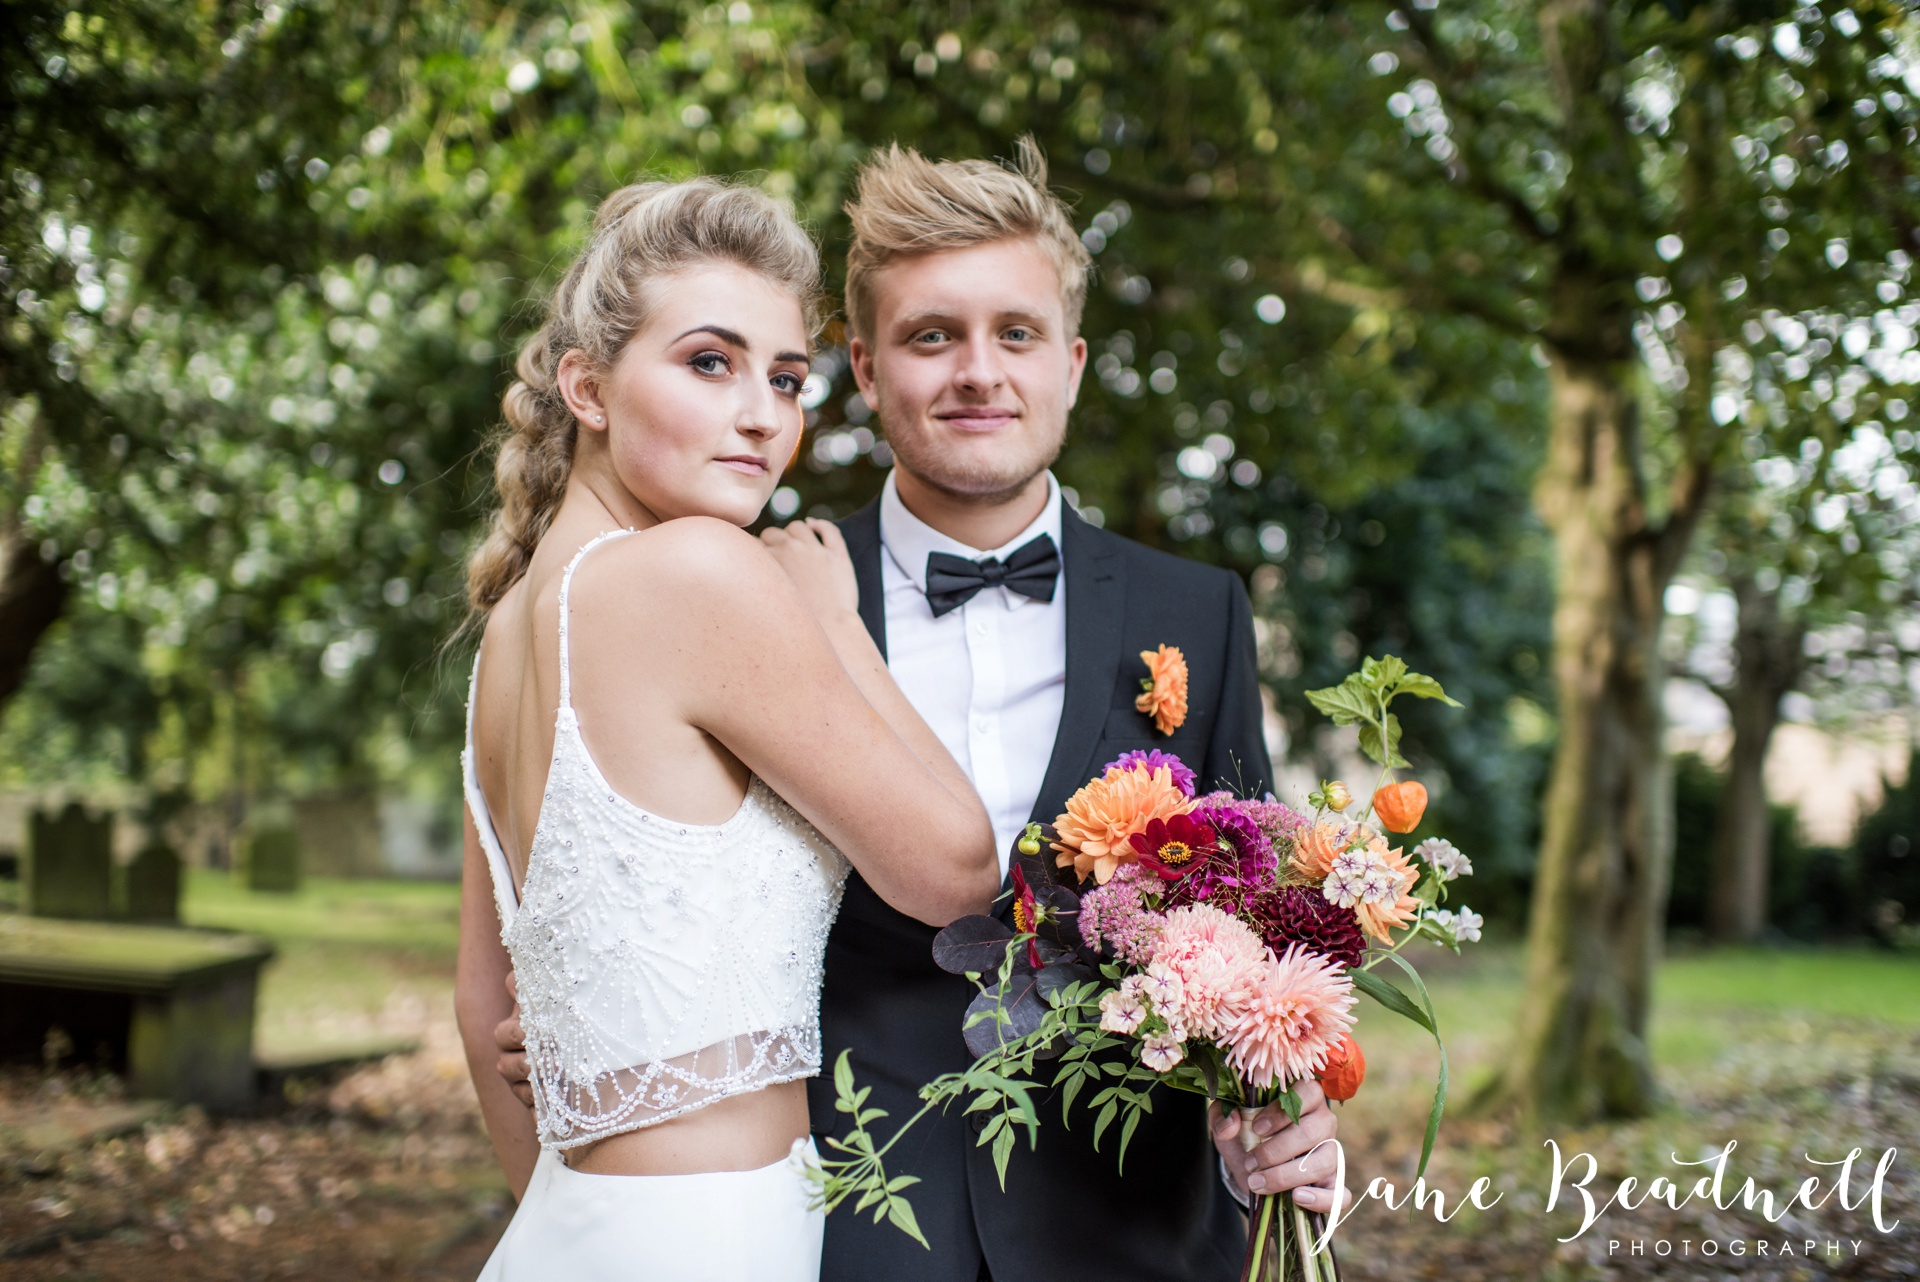 yorkshire-fine-art-wedding-photographer-jane-beadnell-photography-with-leafy-couture-wedding-flowers_0027